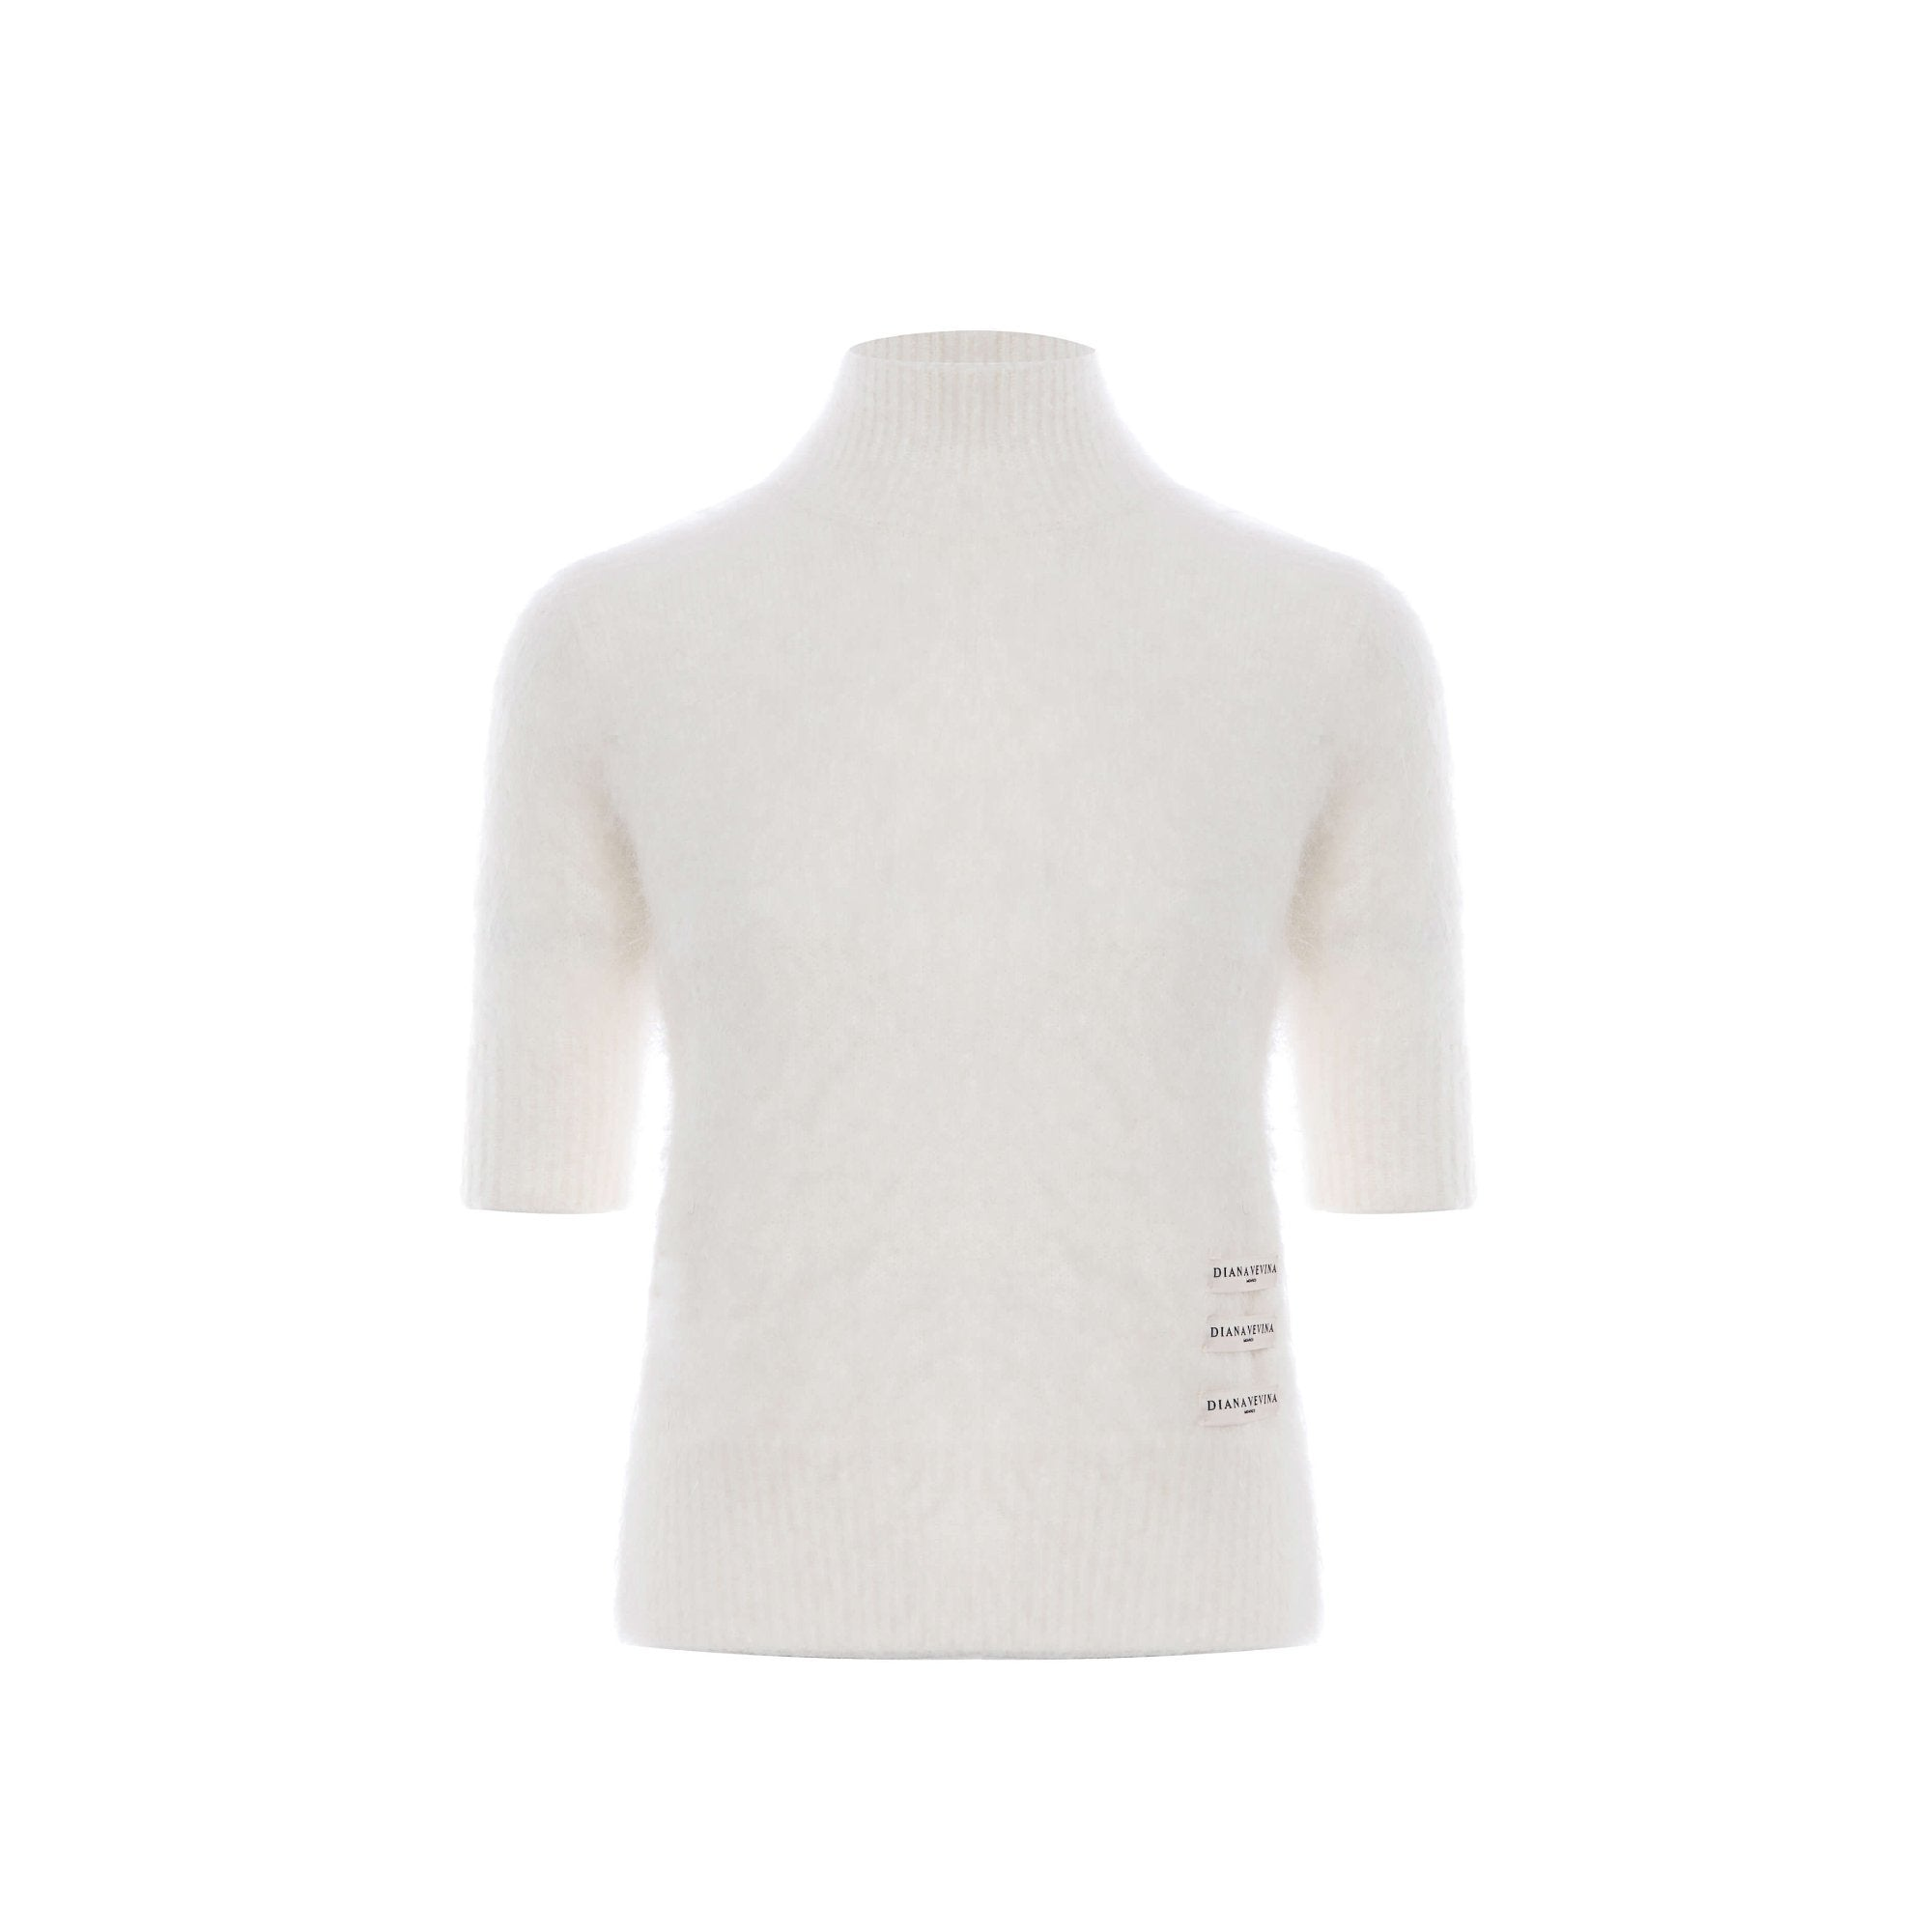 DIANA VEVINA White Mohair Turtleneck Sweatshirt | MADA IN CHINA